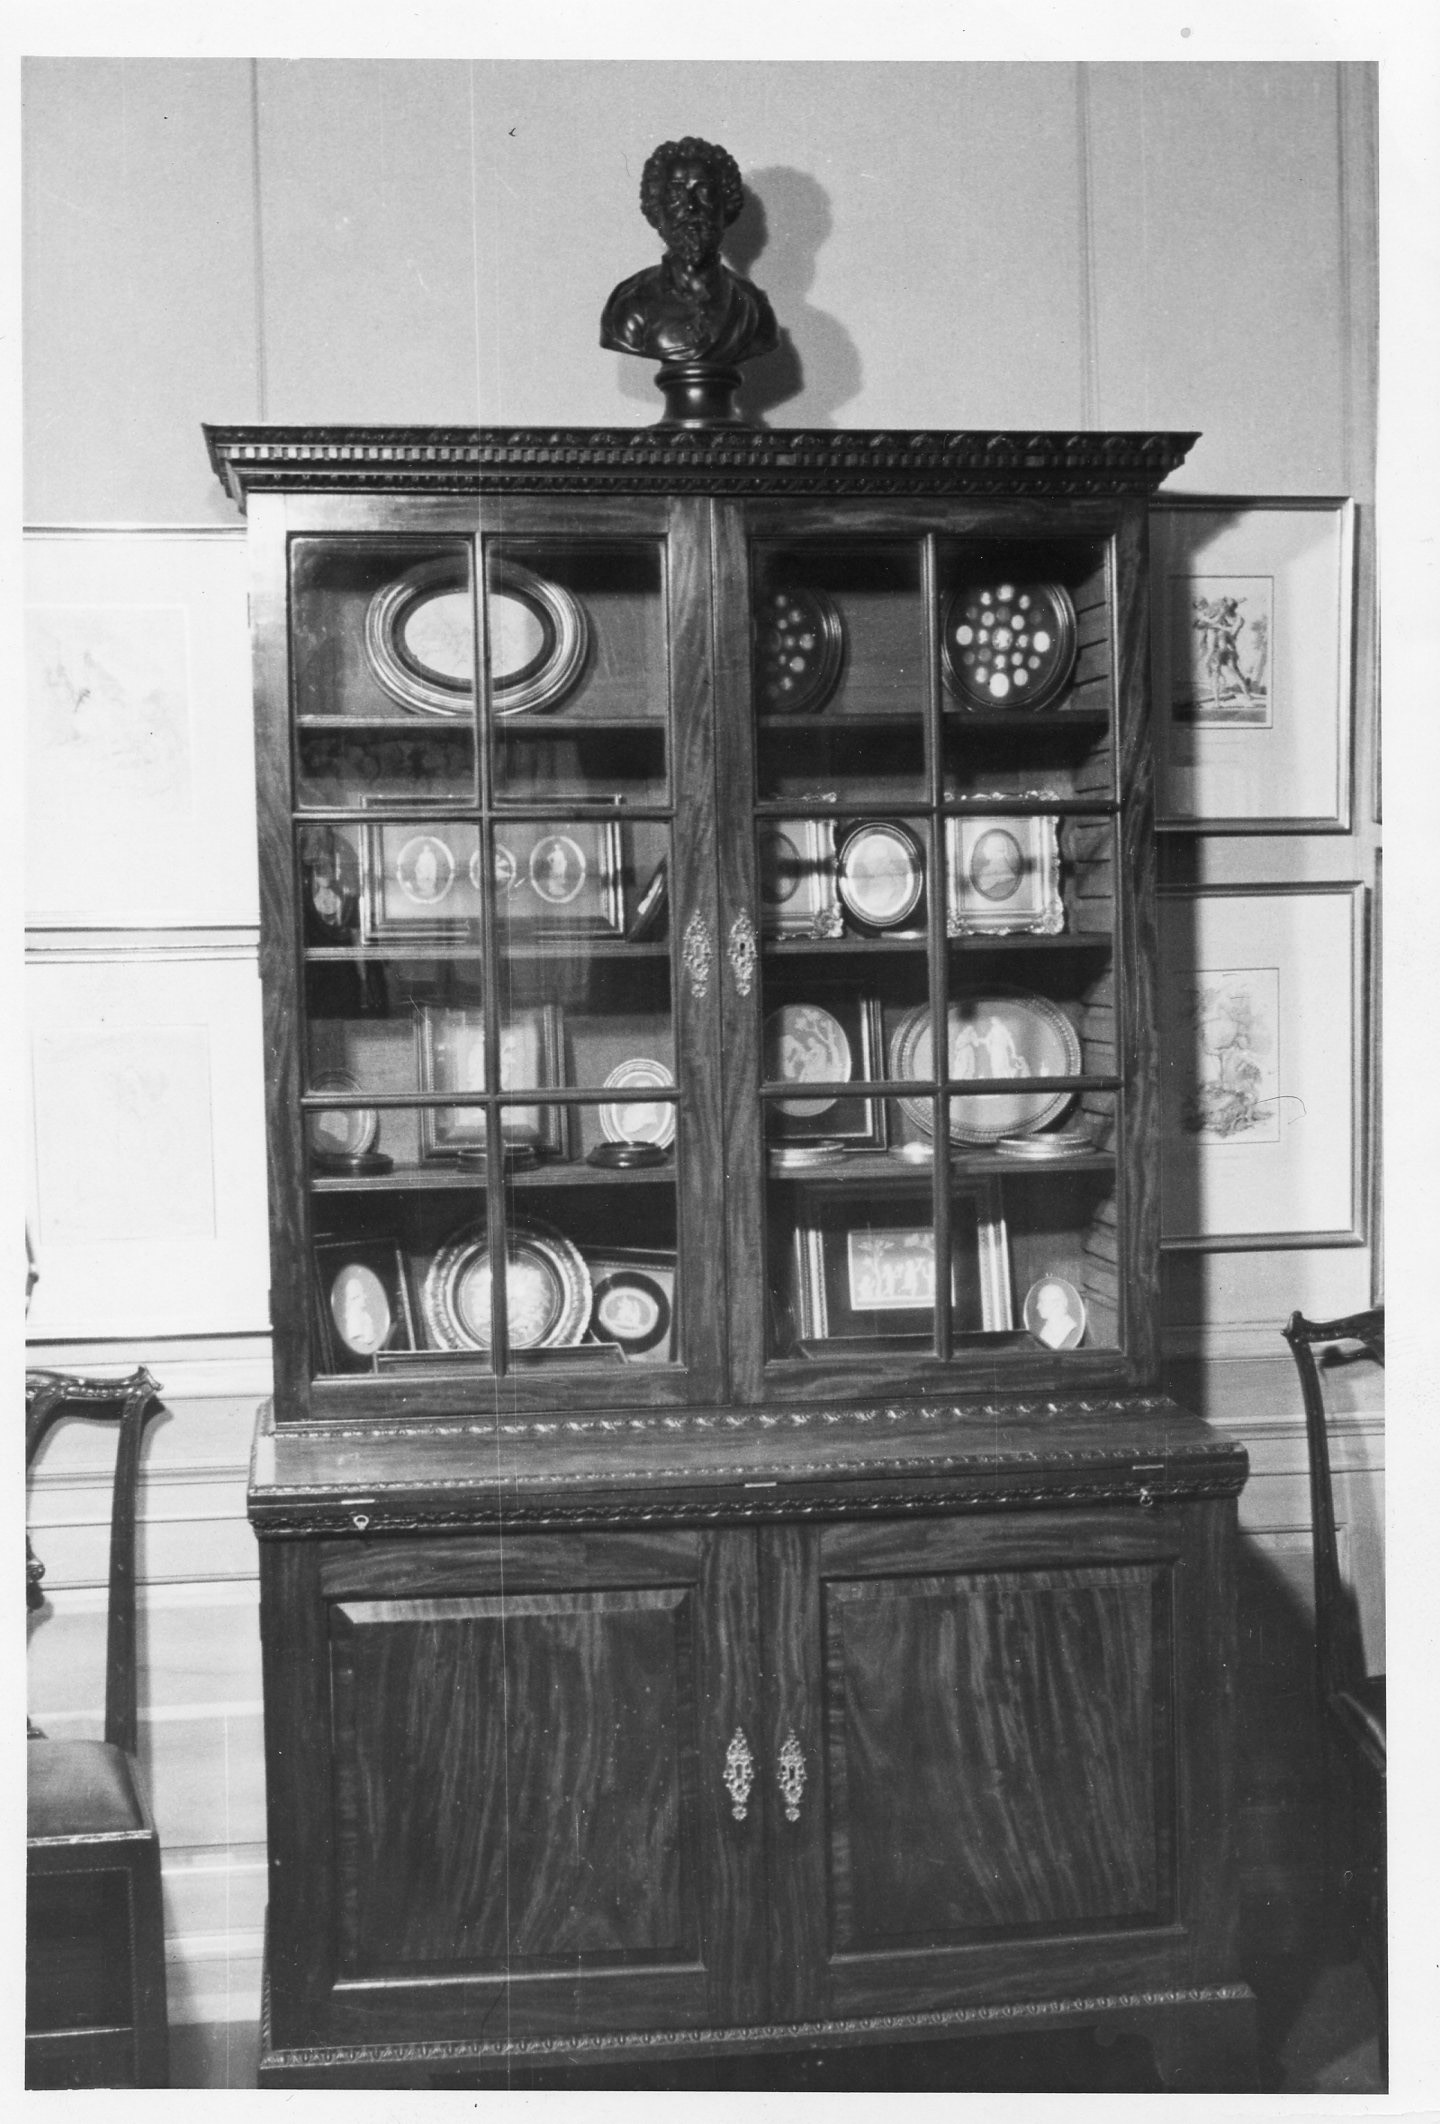 A black and white photograph shows a wooden cabinet with glass doors against the wall. The cabinet is filled with medallions and a bust is on top.